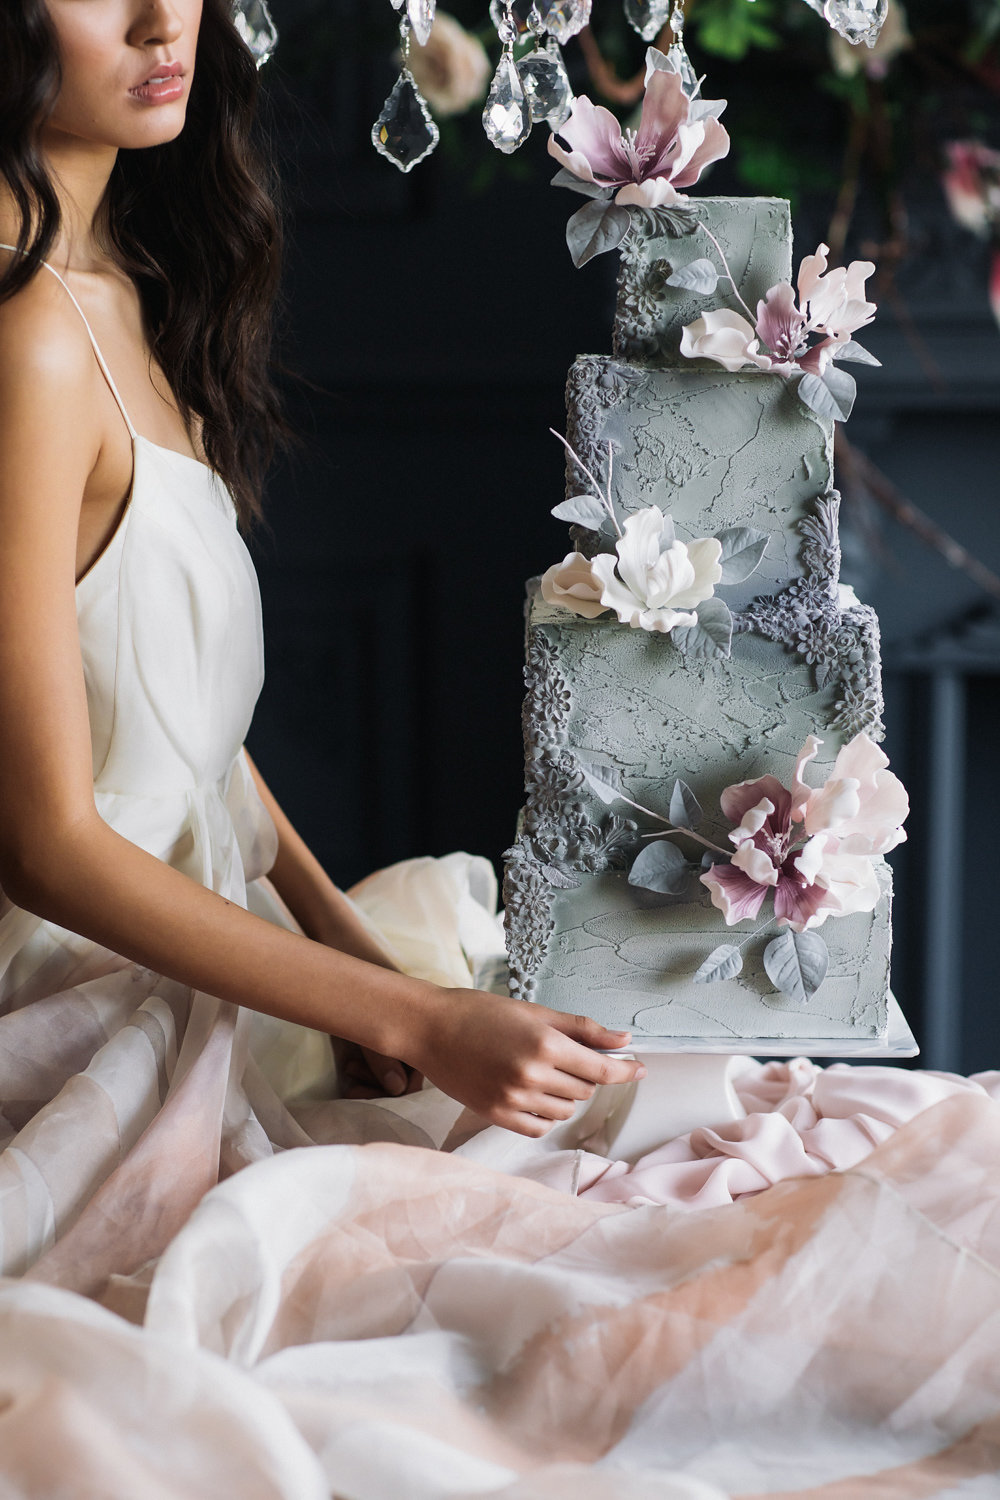 August In Bloom - Decadent cake - Magnolia Dreams (The Bridal Affair)